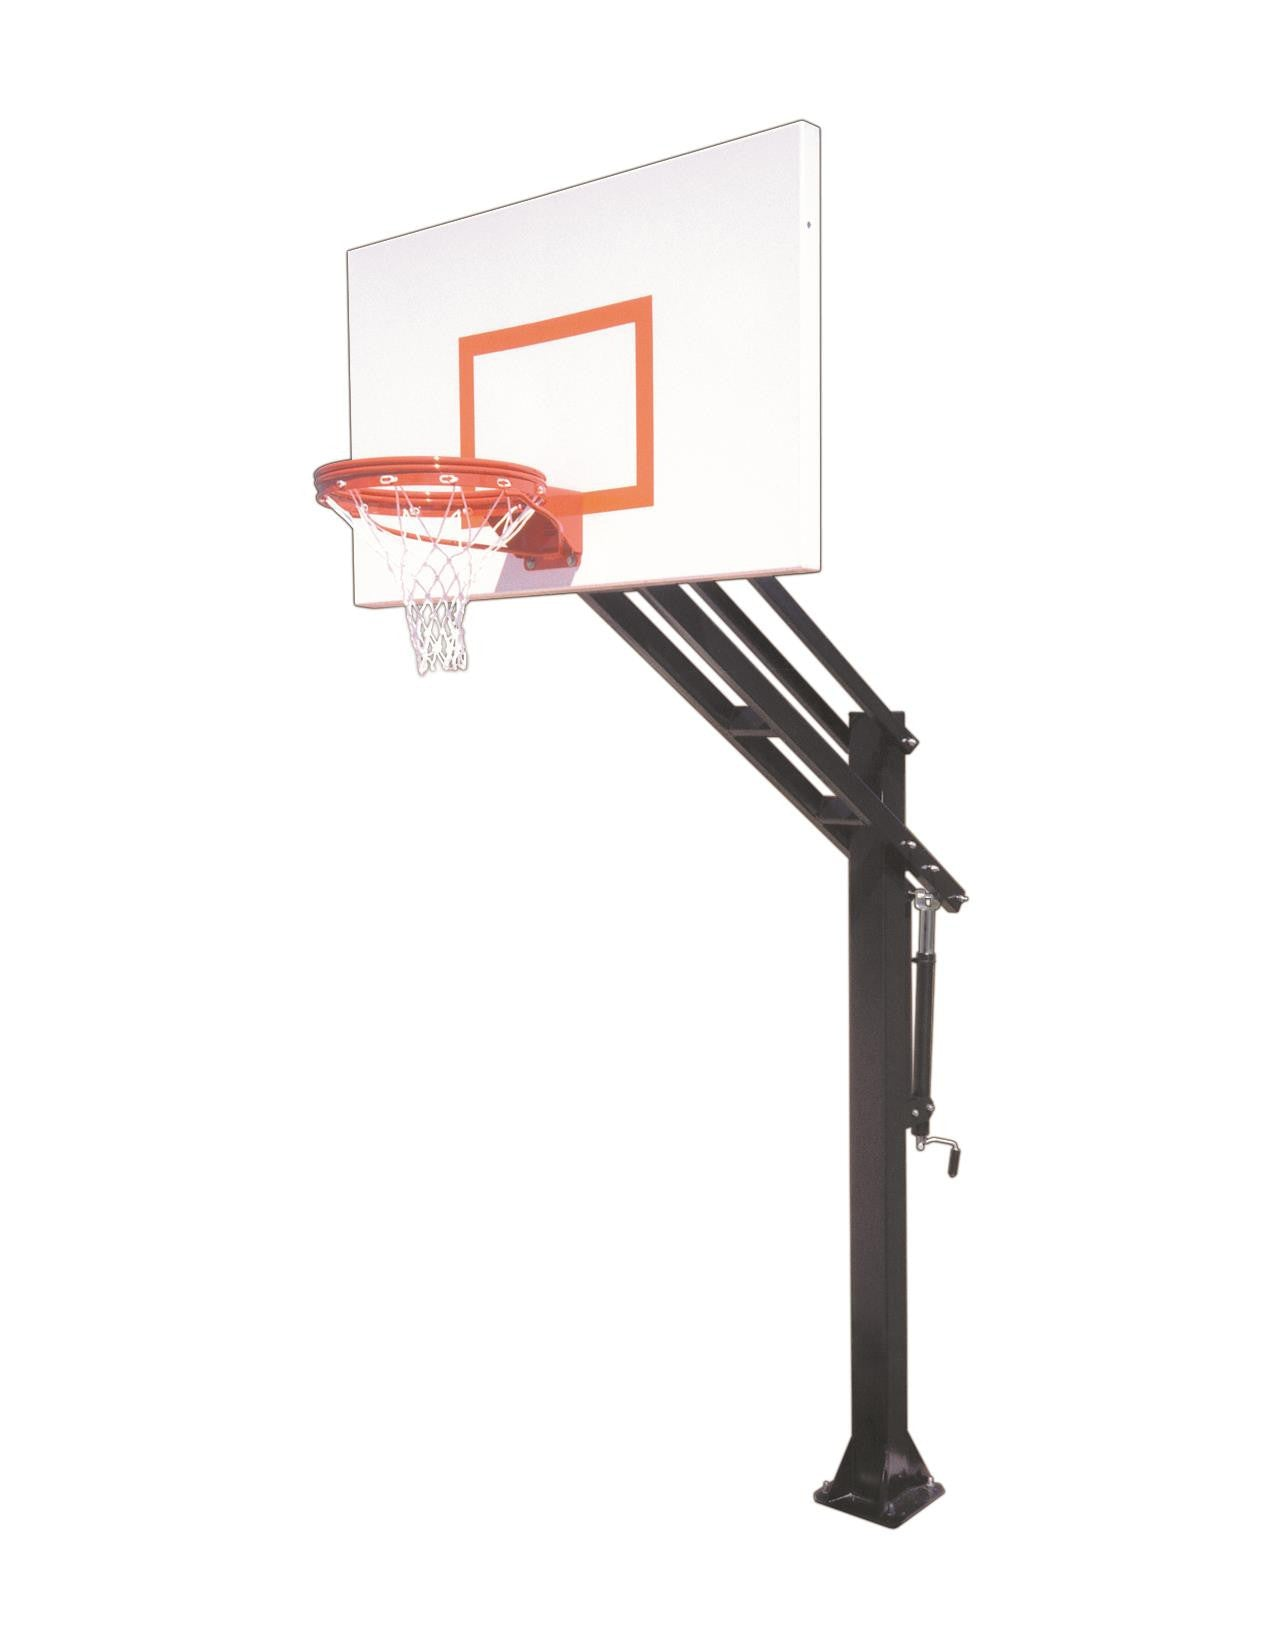 First Team Force Extreme In Ground Outdoor Adjustable Basketball Hoop 60 inch Steel